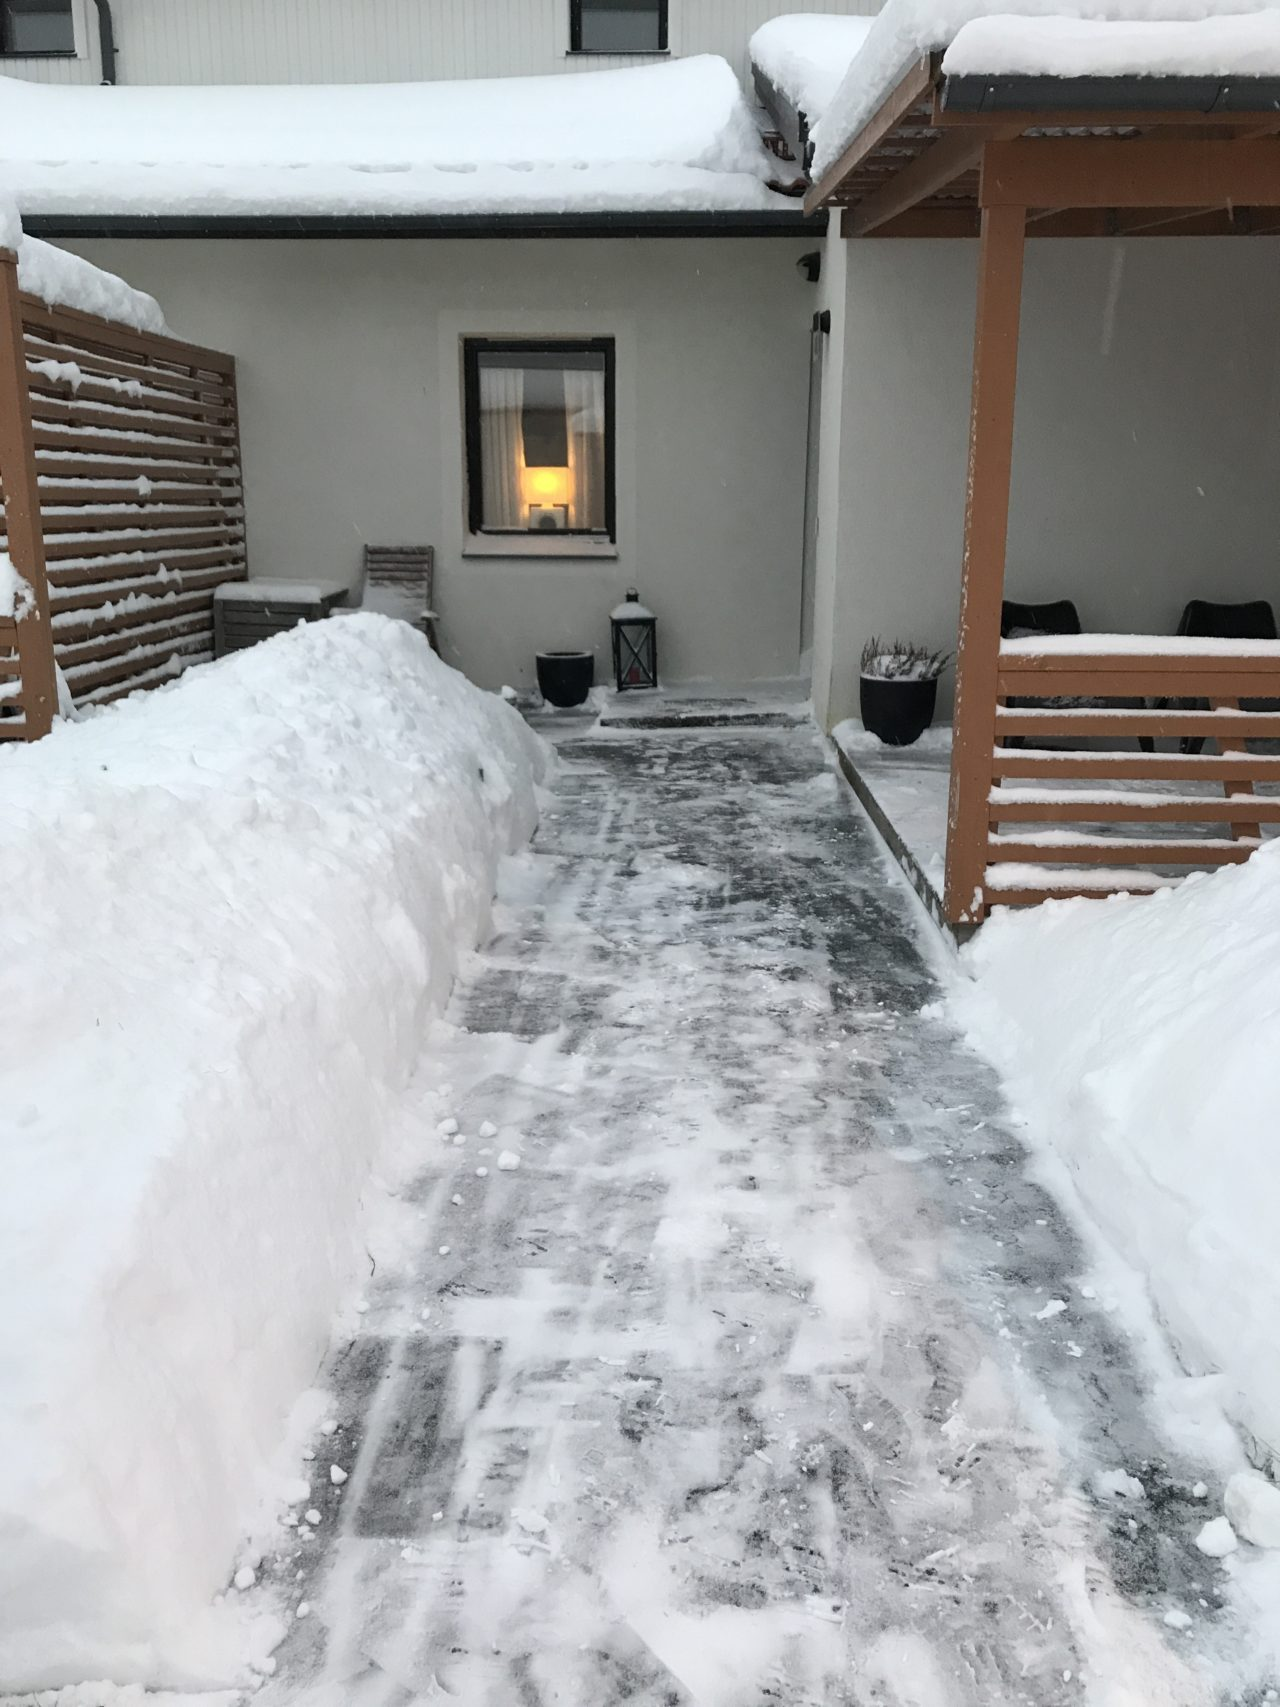 Cleared Path In The Snow To The Front Door Of A House